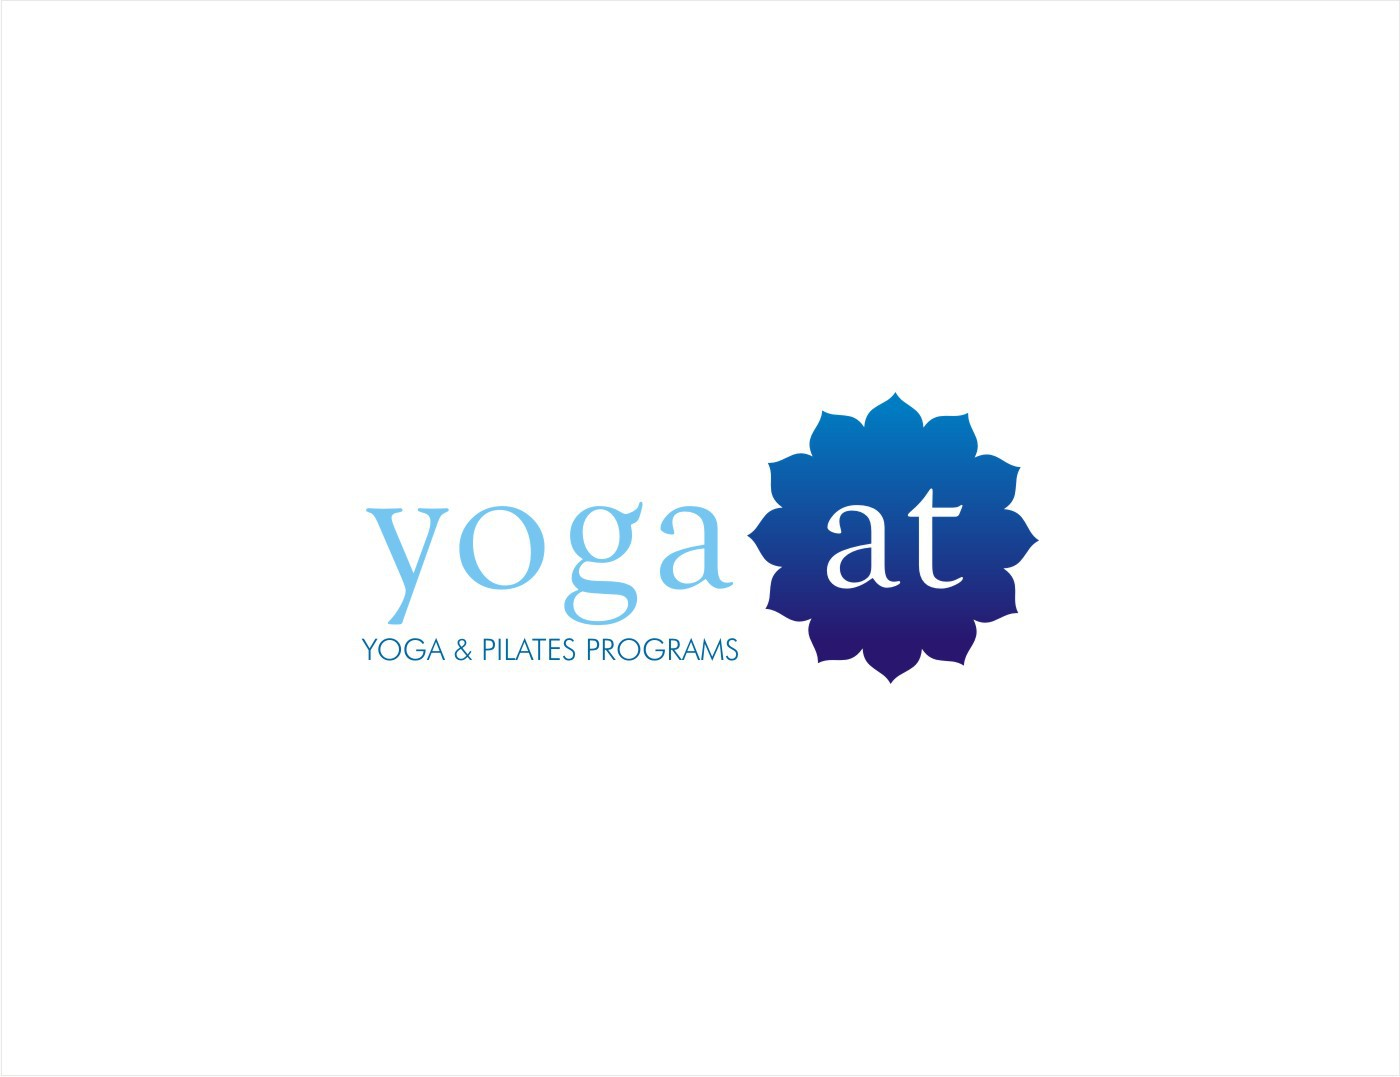 New logo wanted for Yoga At